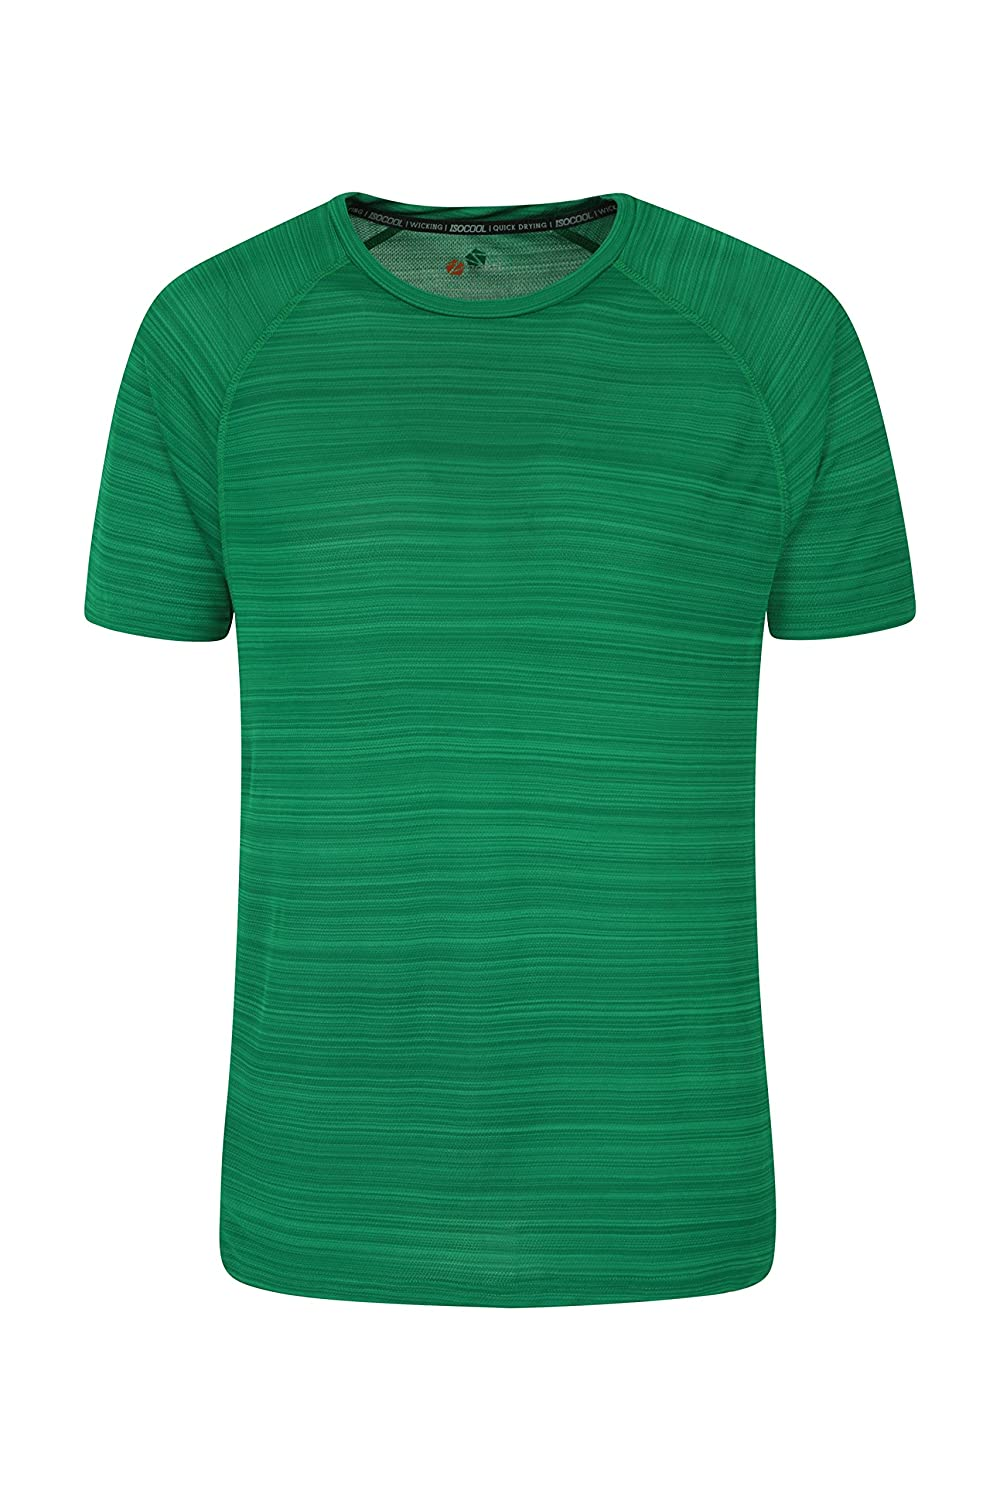 Mountain Warehouse Endurance Striped Mens T-Shirt - Summer Shirt